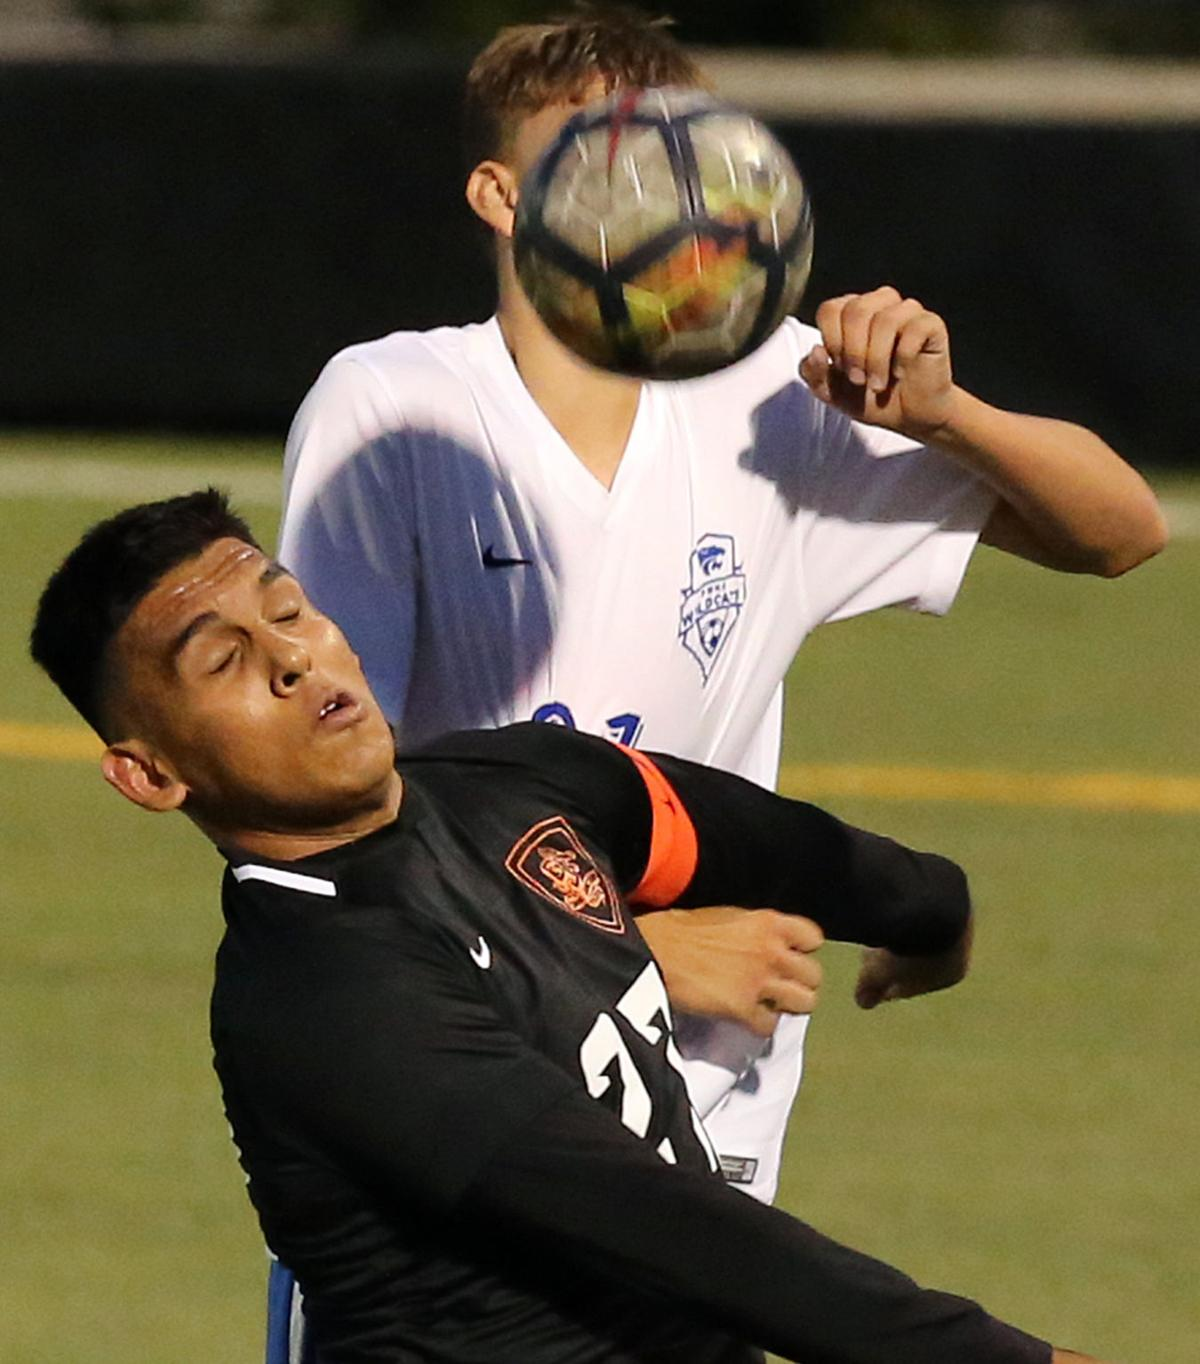 Grand Junction soccer team beats Fruita for 6th straight time